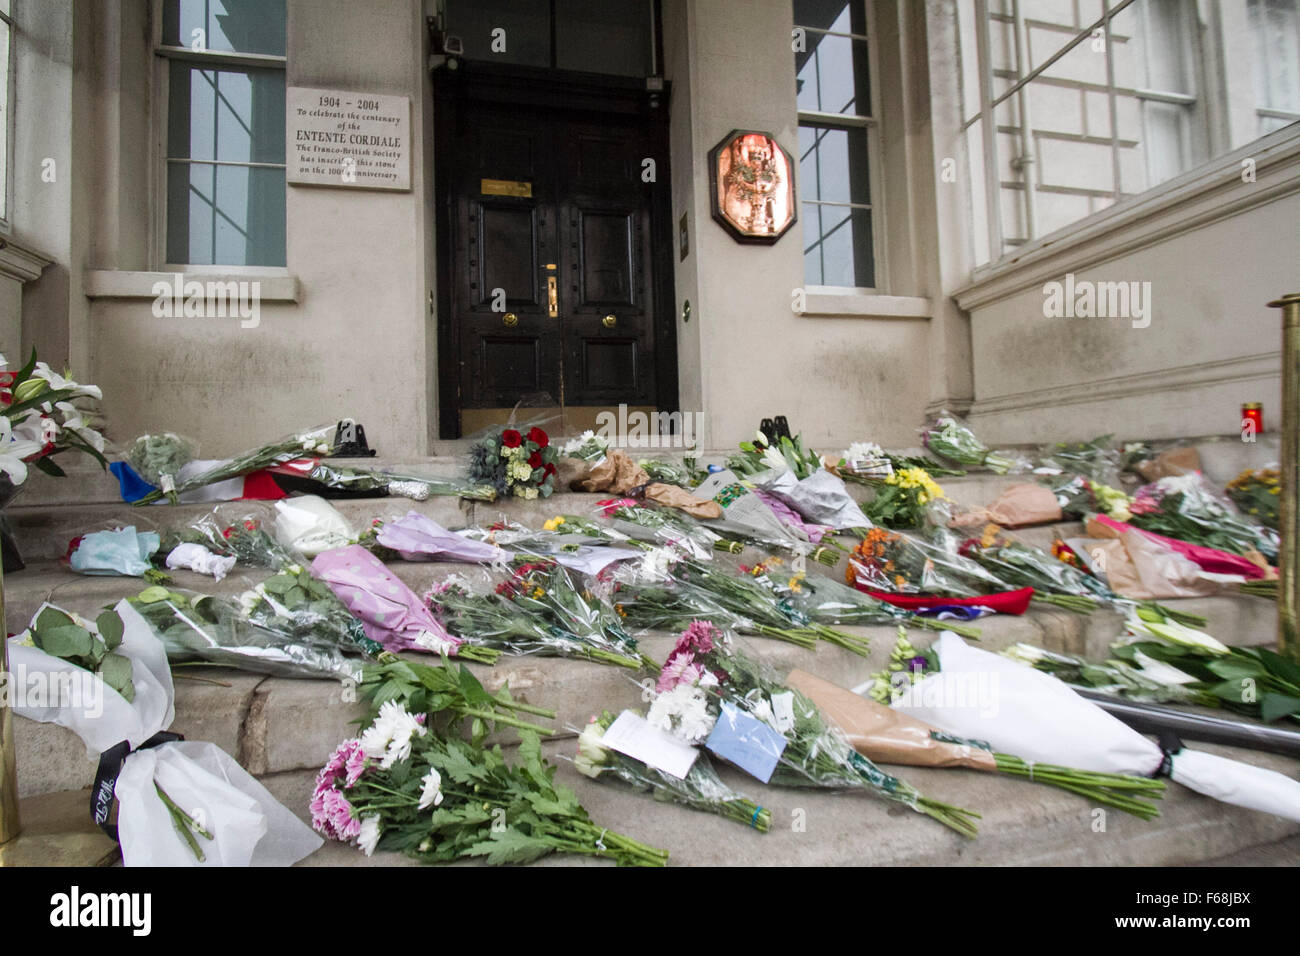 London,UK. 14th November 2015. Floral tributes and condolence cards are placed on the steps of the French embassy Stock Photo